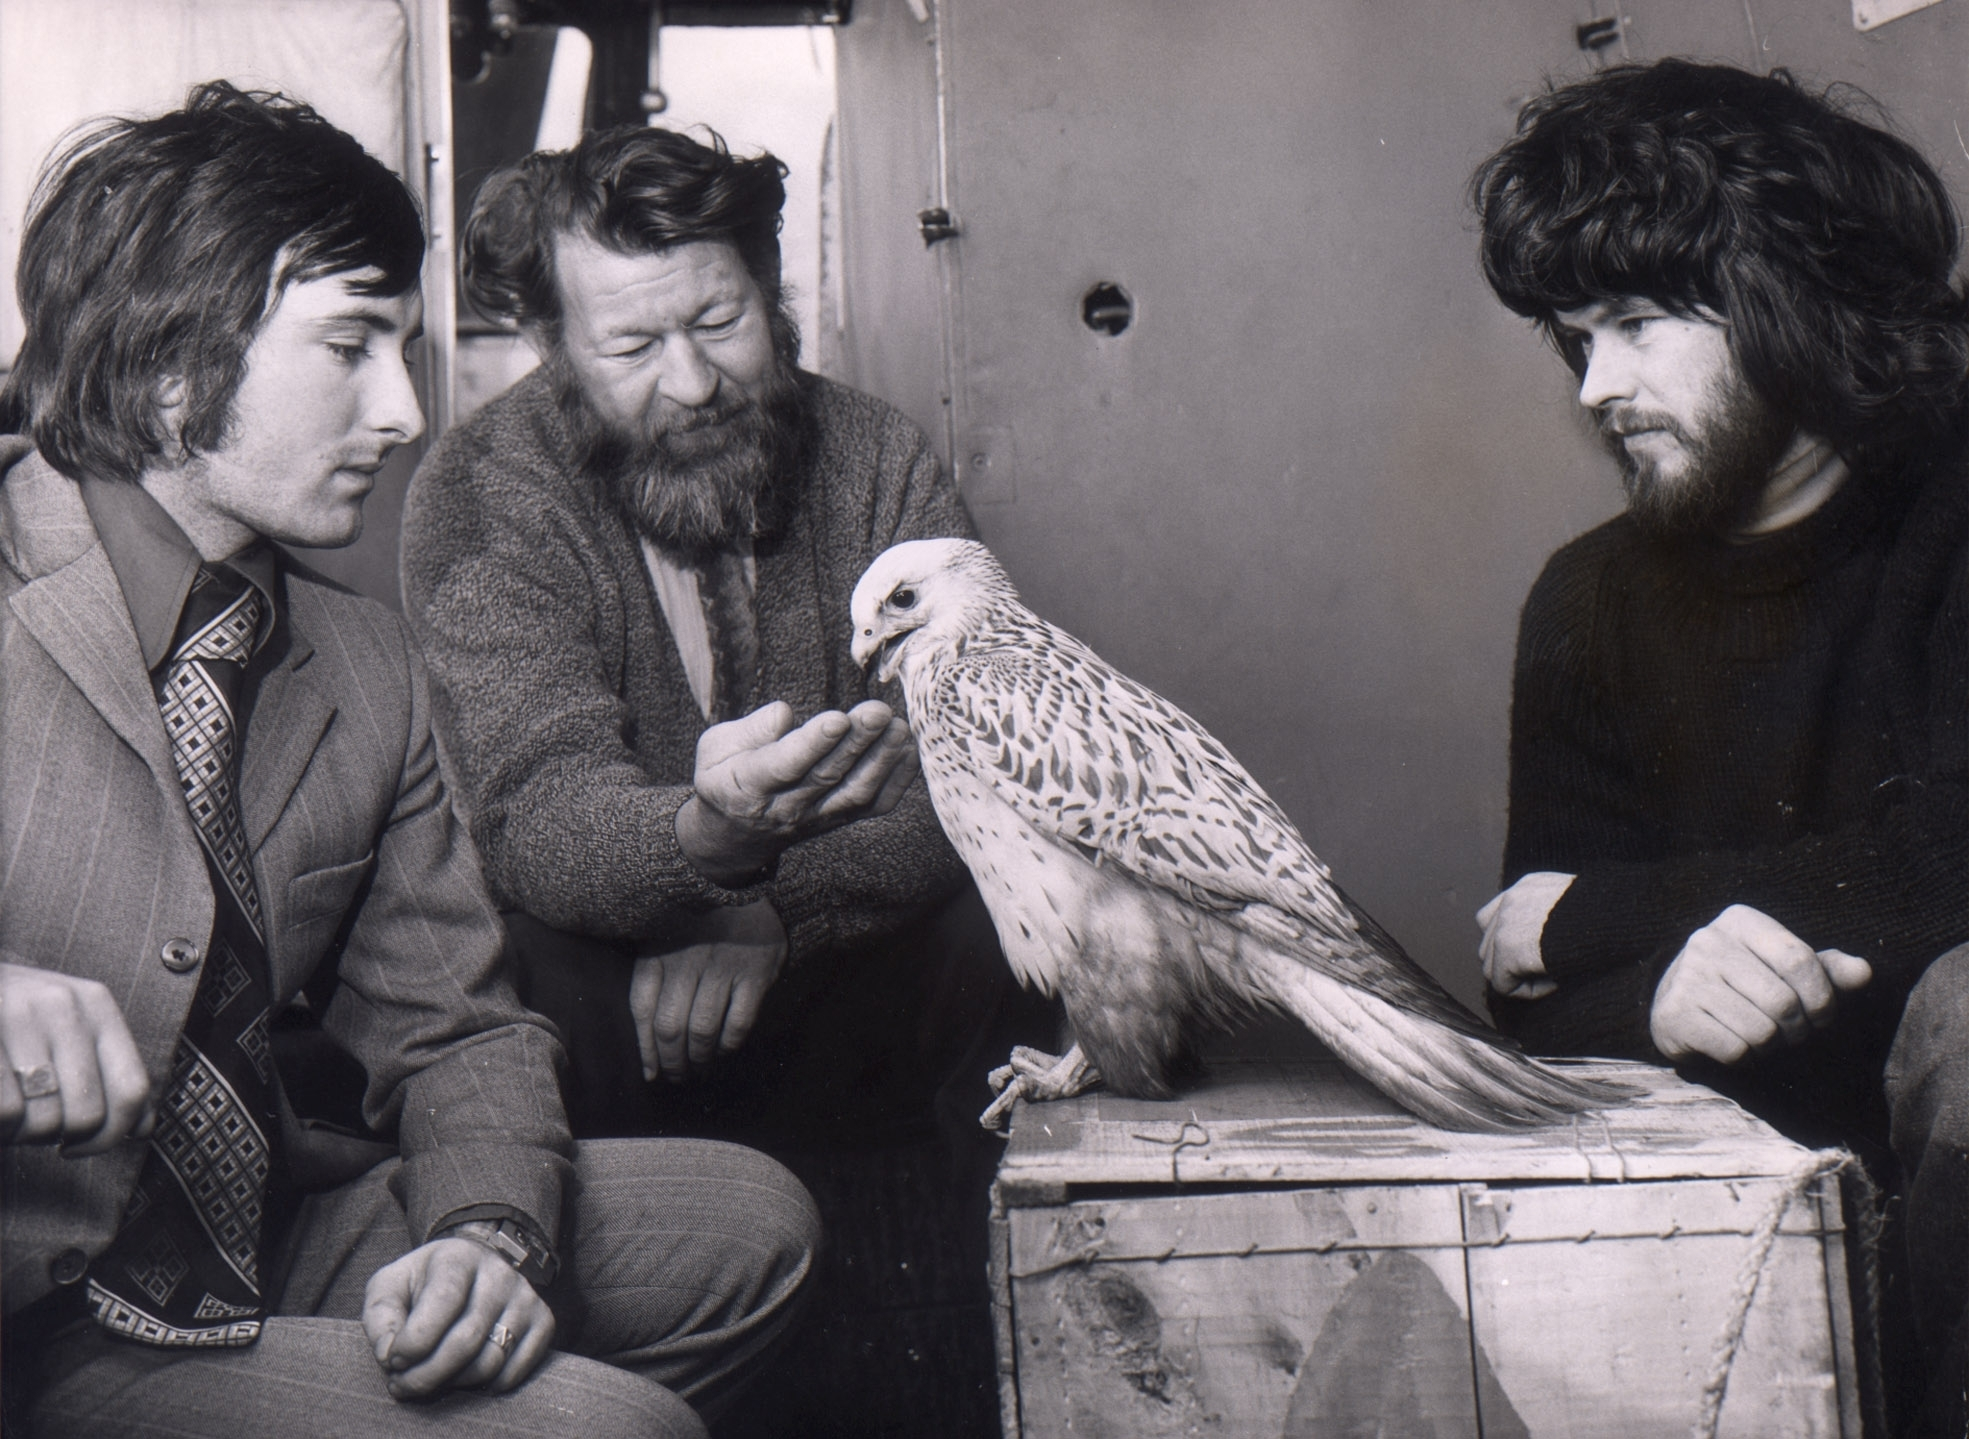 A rare white gyr falcon was found on the rig Ocean Rover in the Forties Field, exhausted and poisoned by oil in 1975. The bird was flown by helicopter to Aberdeen Airport. The falcon was checked over by George Leslie of Aberdeen Zoo with Bob Baxter, left, who helped rescue the bird on the rig. It was to be released into the wild again.